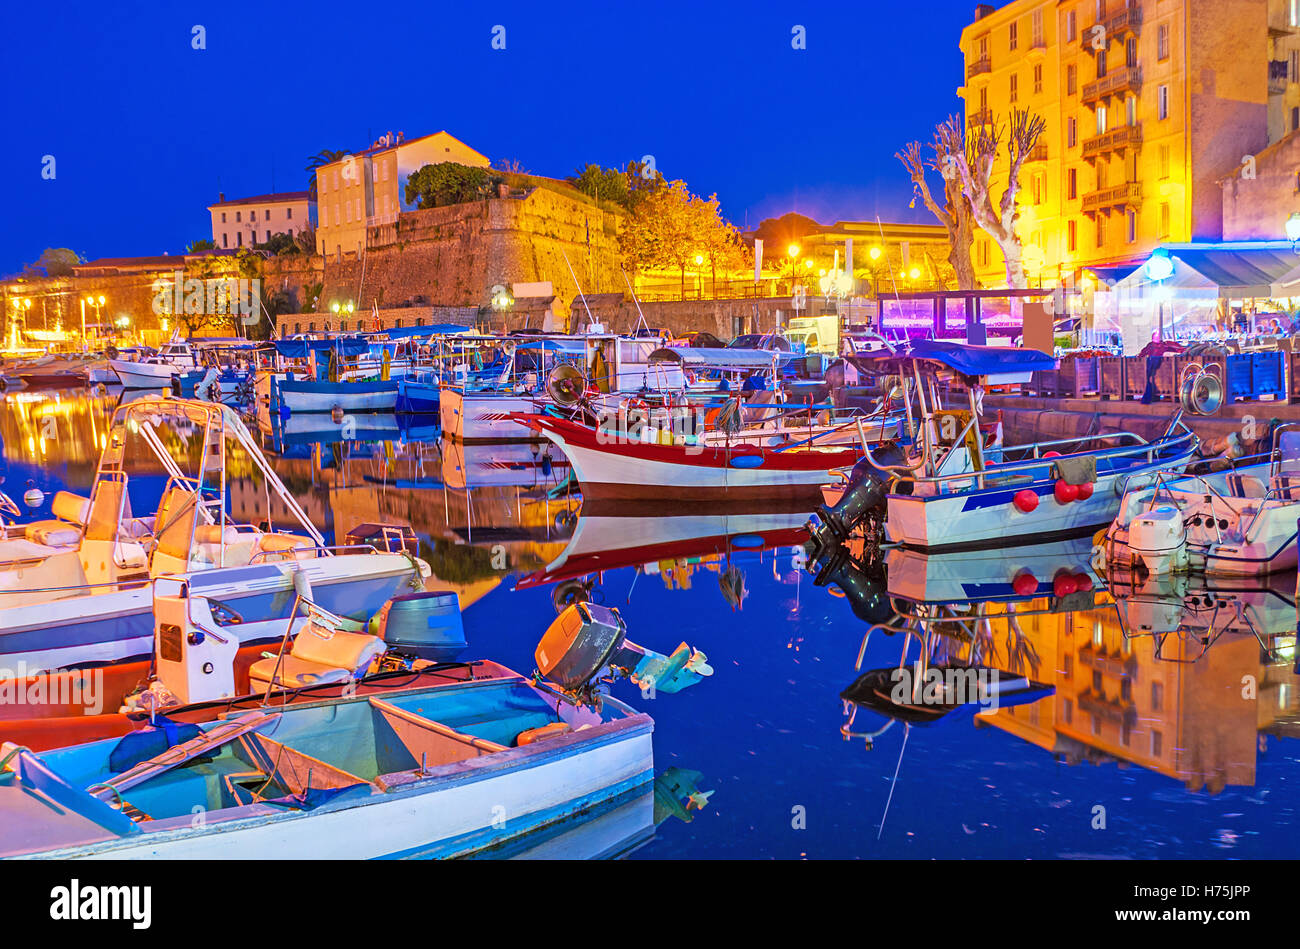 The evening in Ajaccio is the best time to visit port and enjoy dreaming boats and yachts, moored here, Corsica, - Stock Image